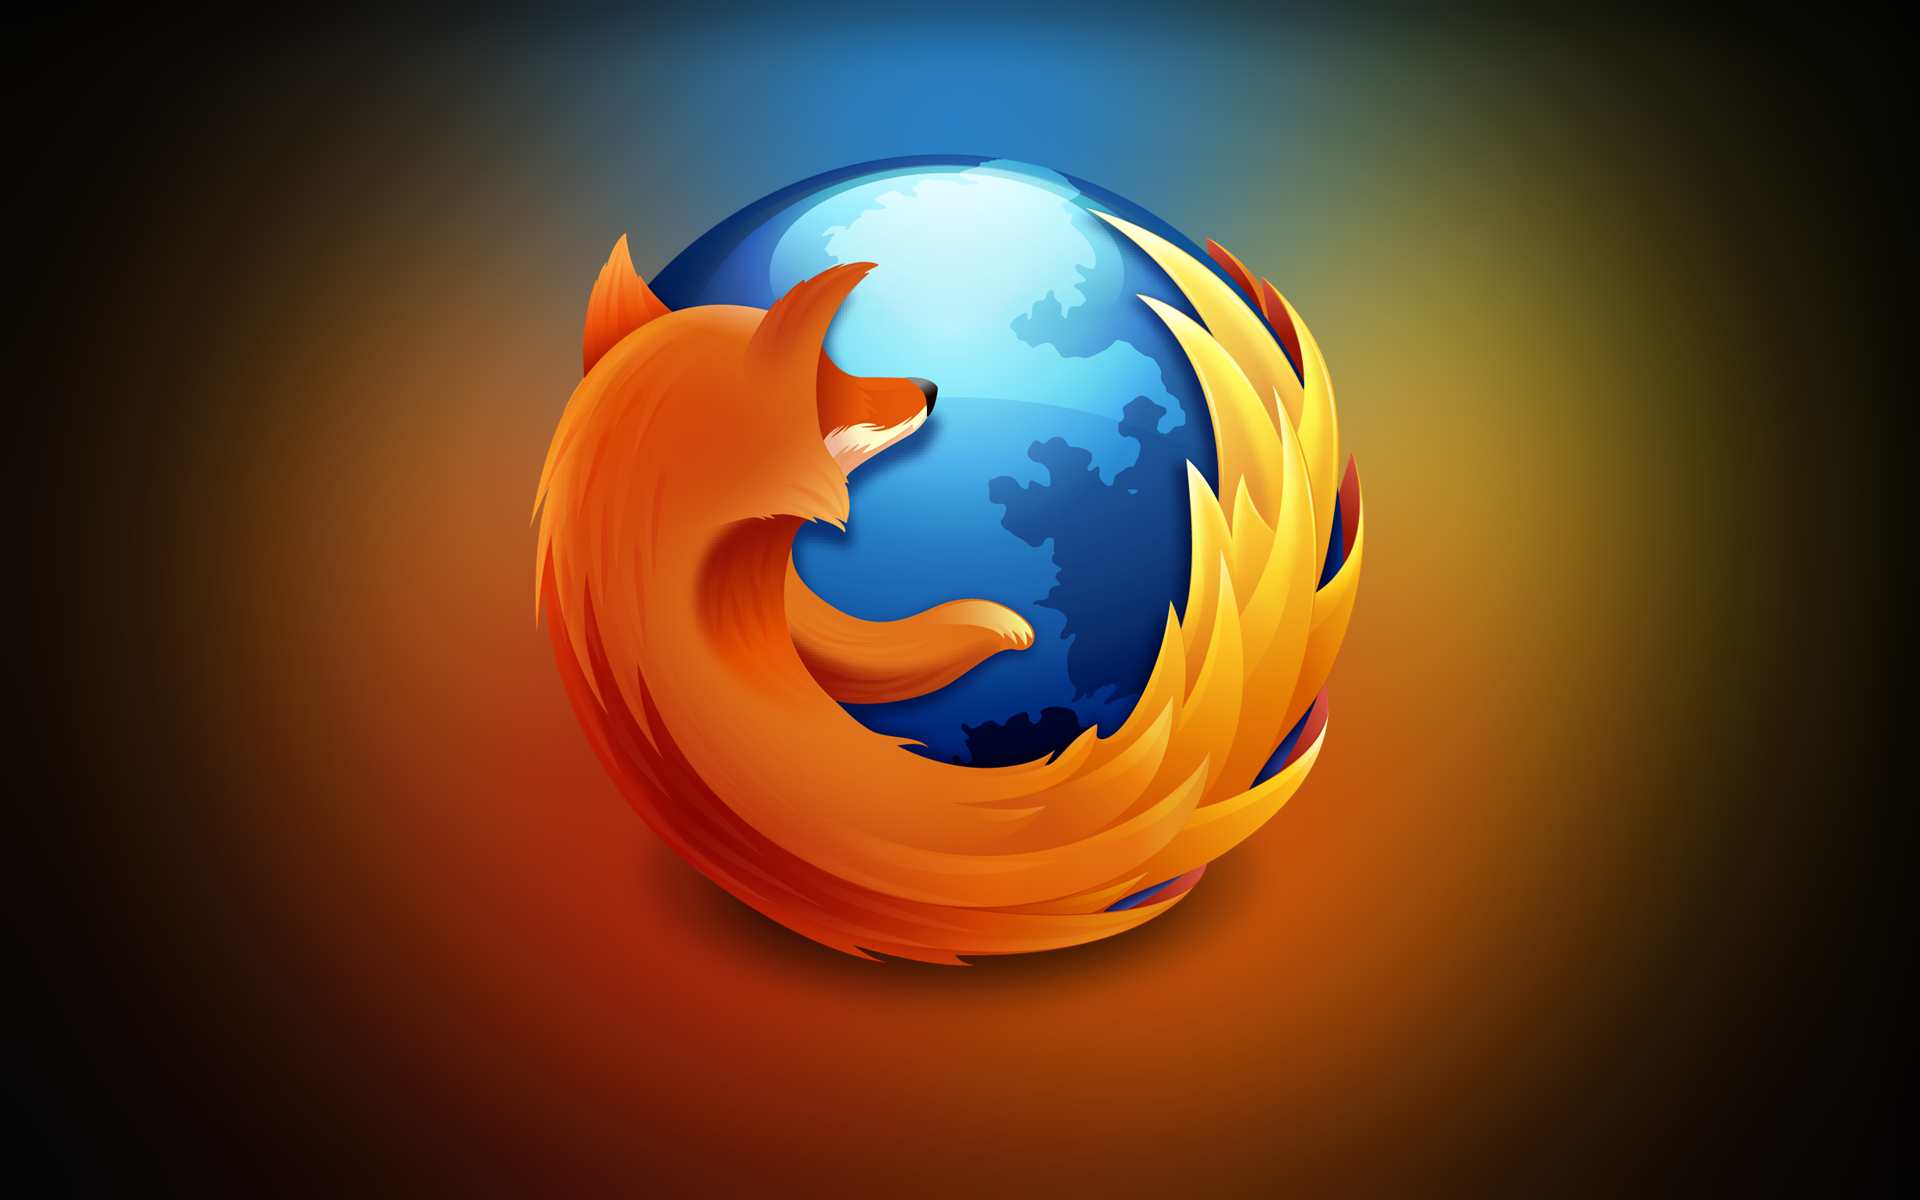 http://www.windowsteca.net/wp-content/uploads/2015/07/Firefox-True-Colors-1920x1200-2010-KenSaunders.png